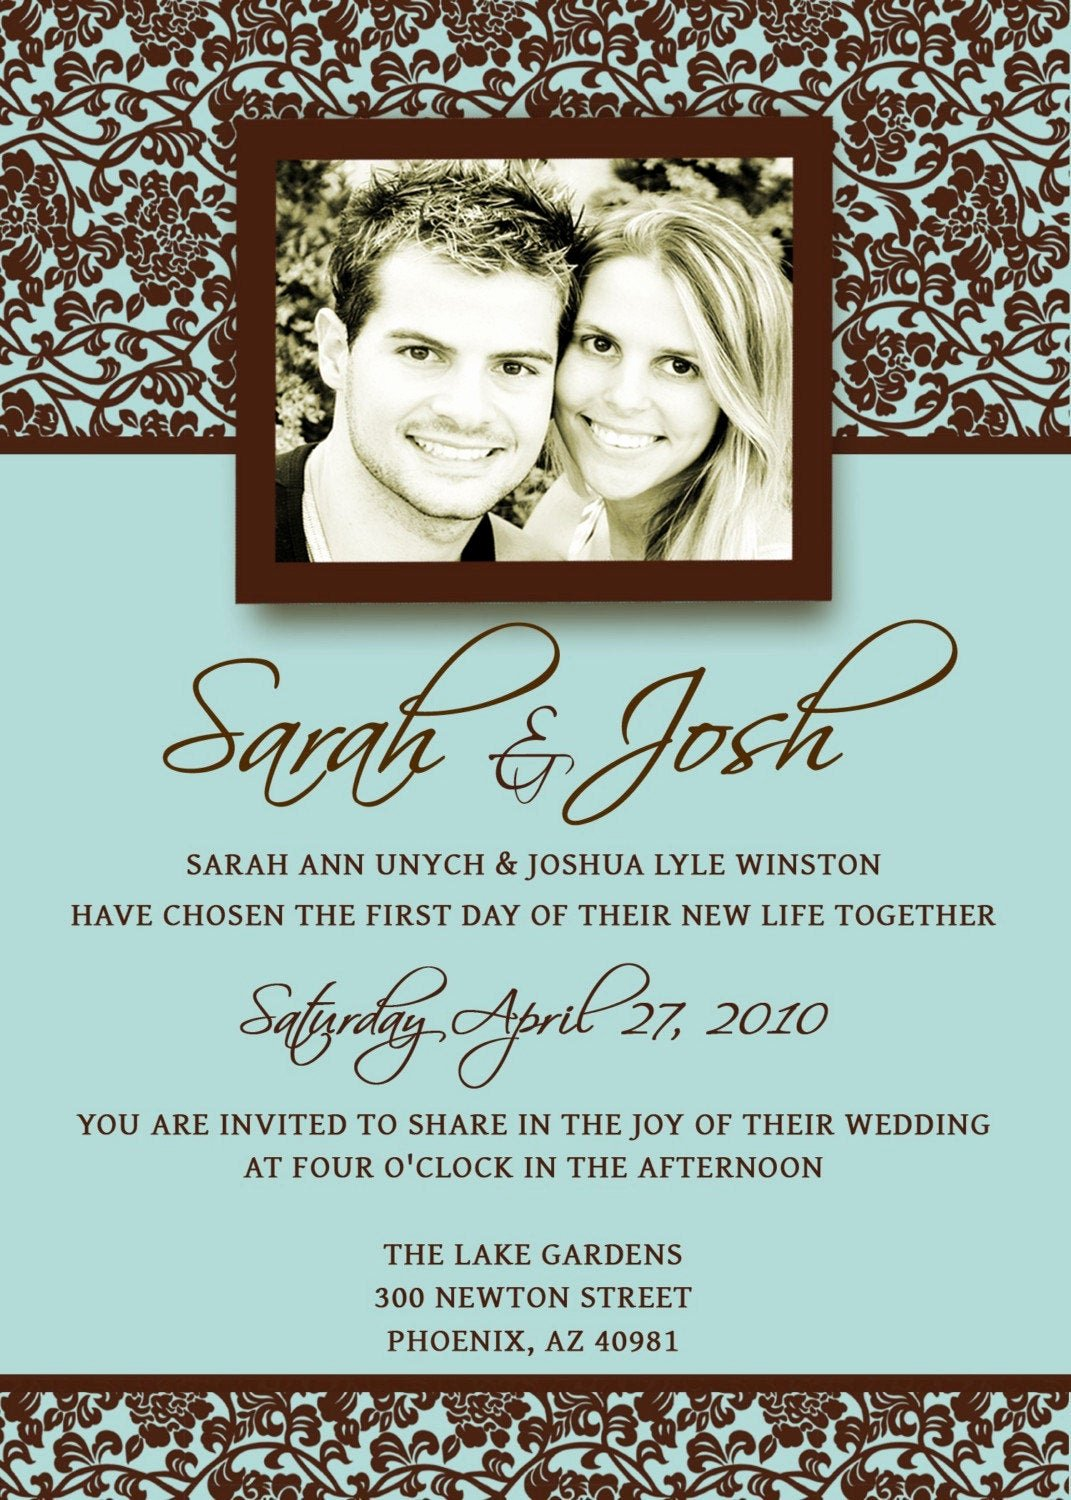 Wedding Invitation Templates Free Inspirational Free Wedding Invitation Templates